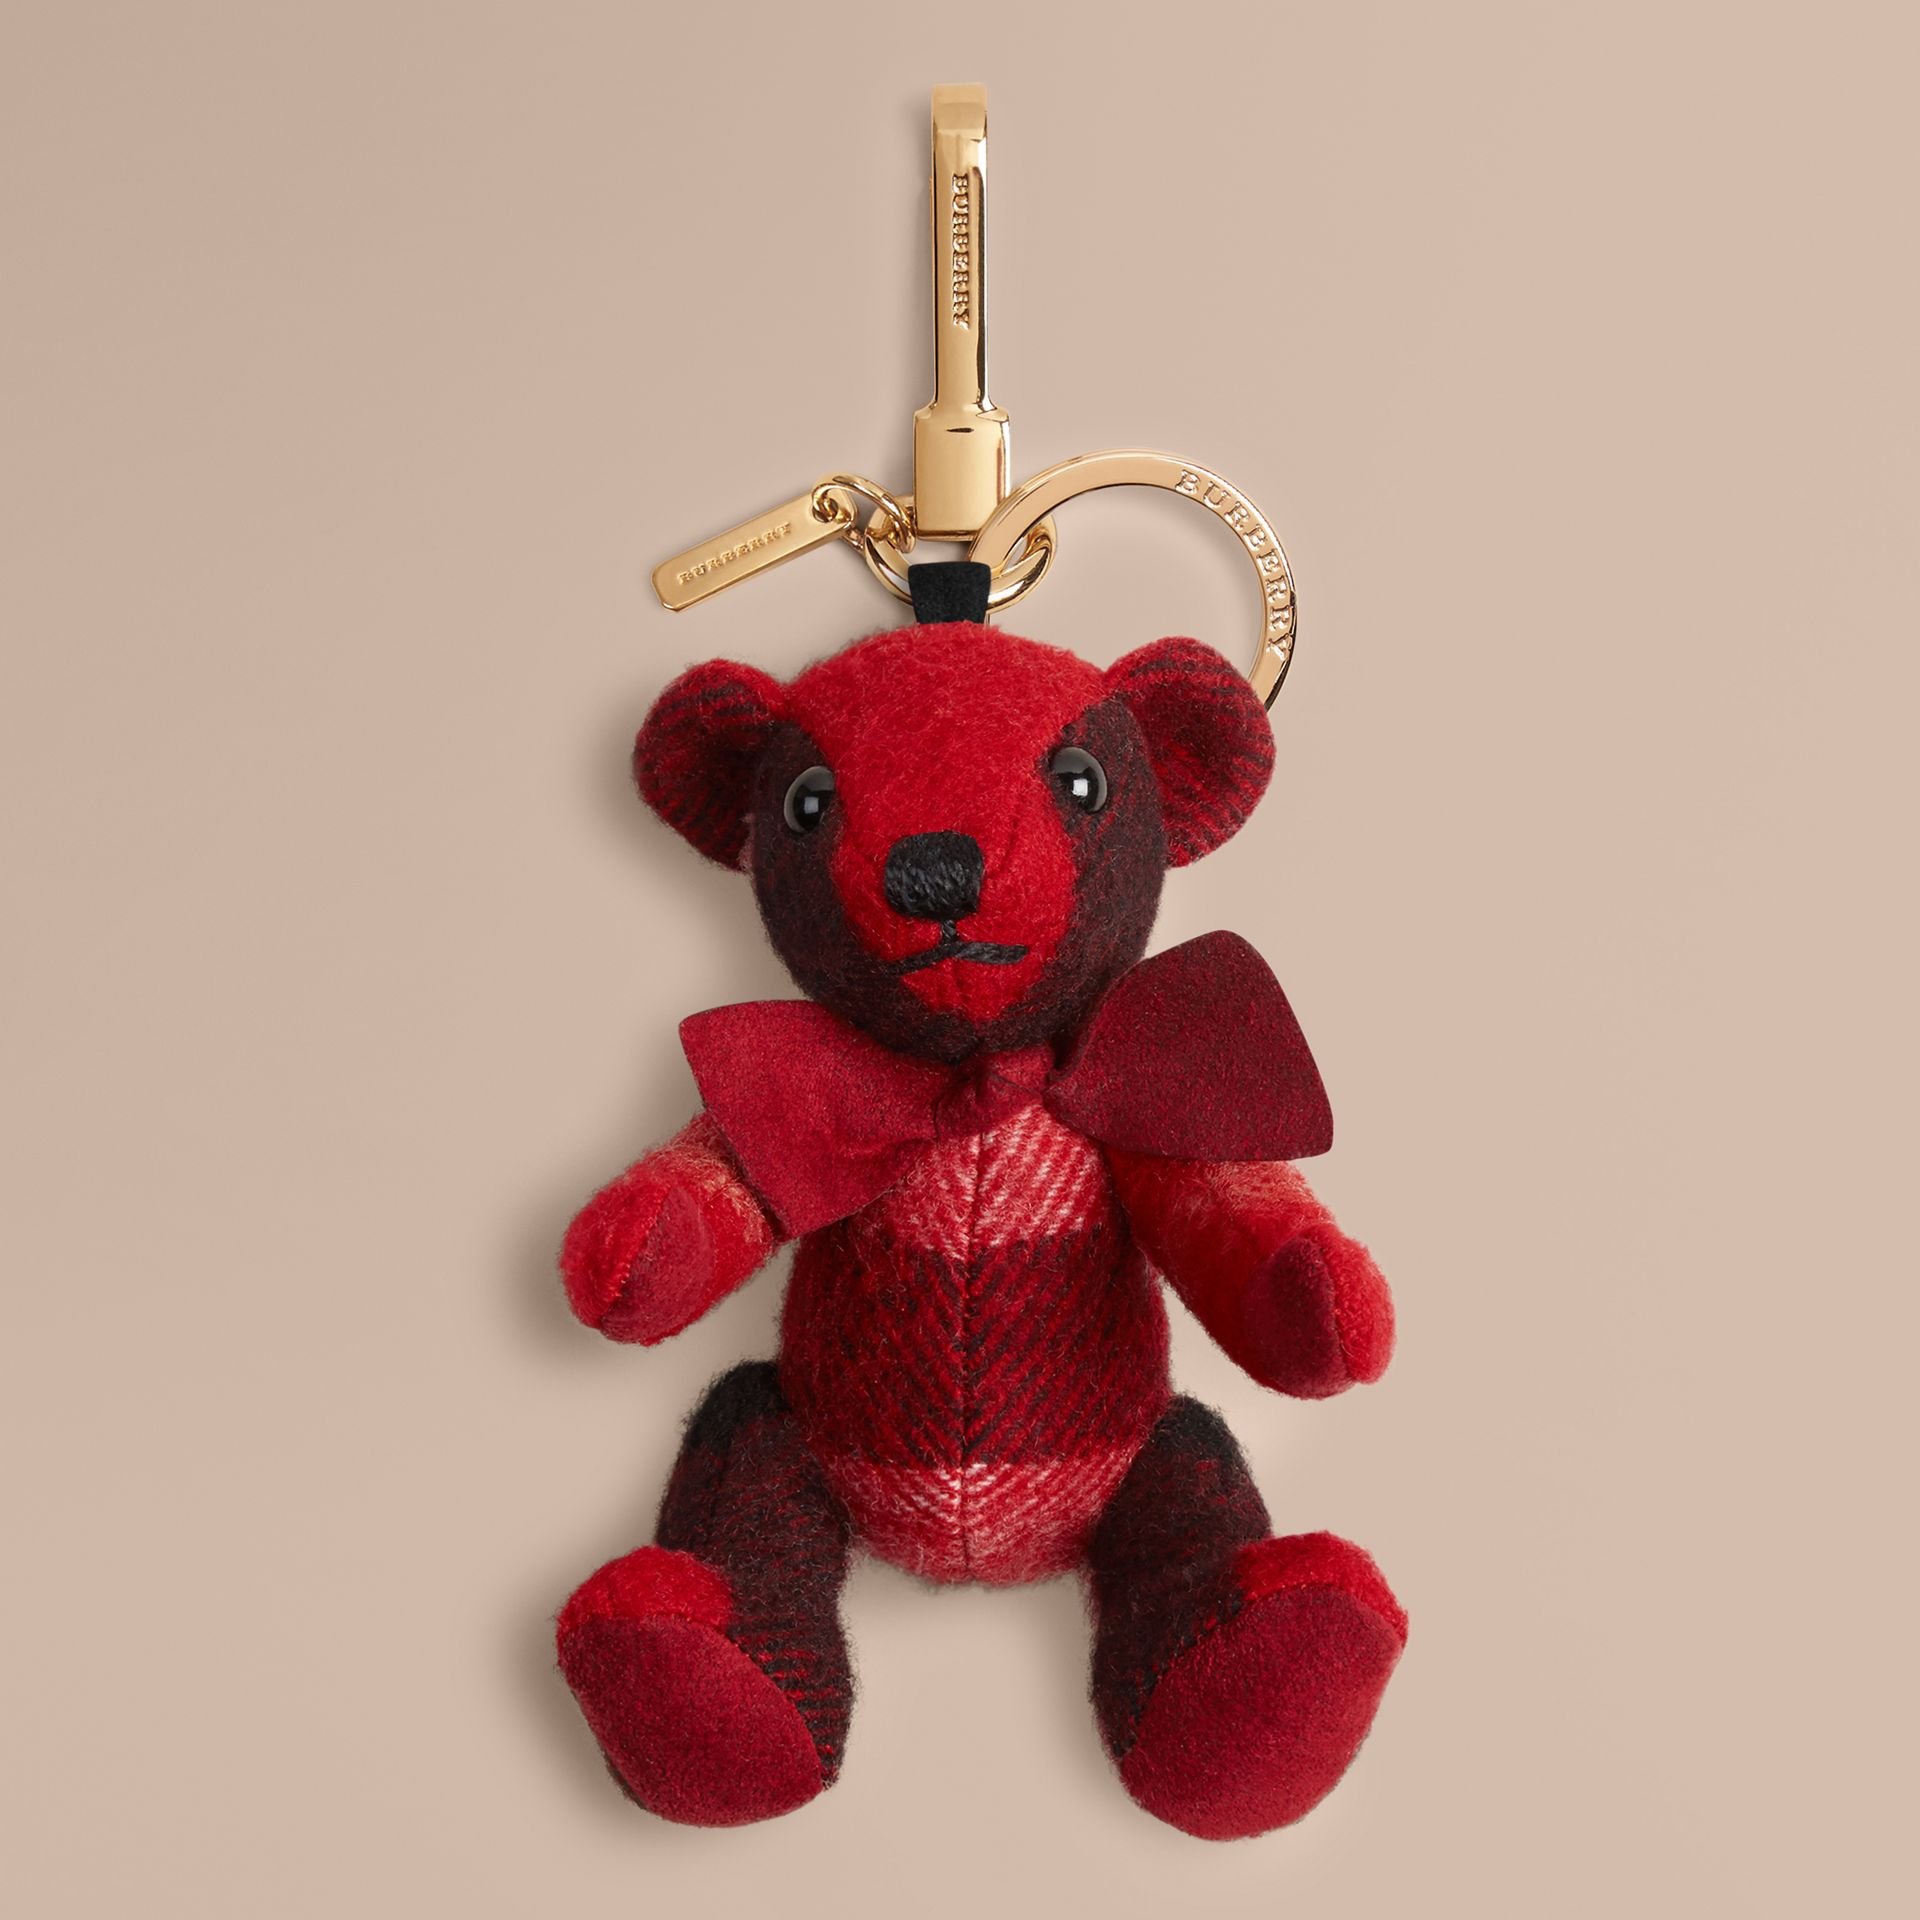 Rouge parade Bijou porte-clés Thomas Bear en cachemire à motif check Rouge Parade - photo de la galerie 1